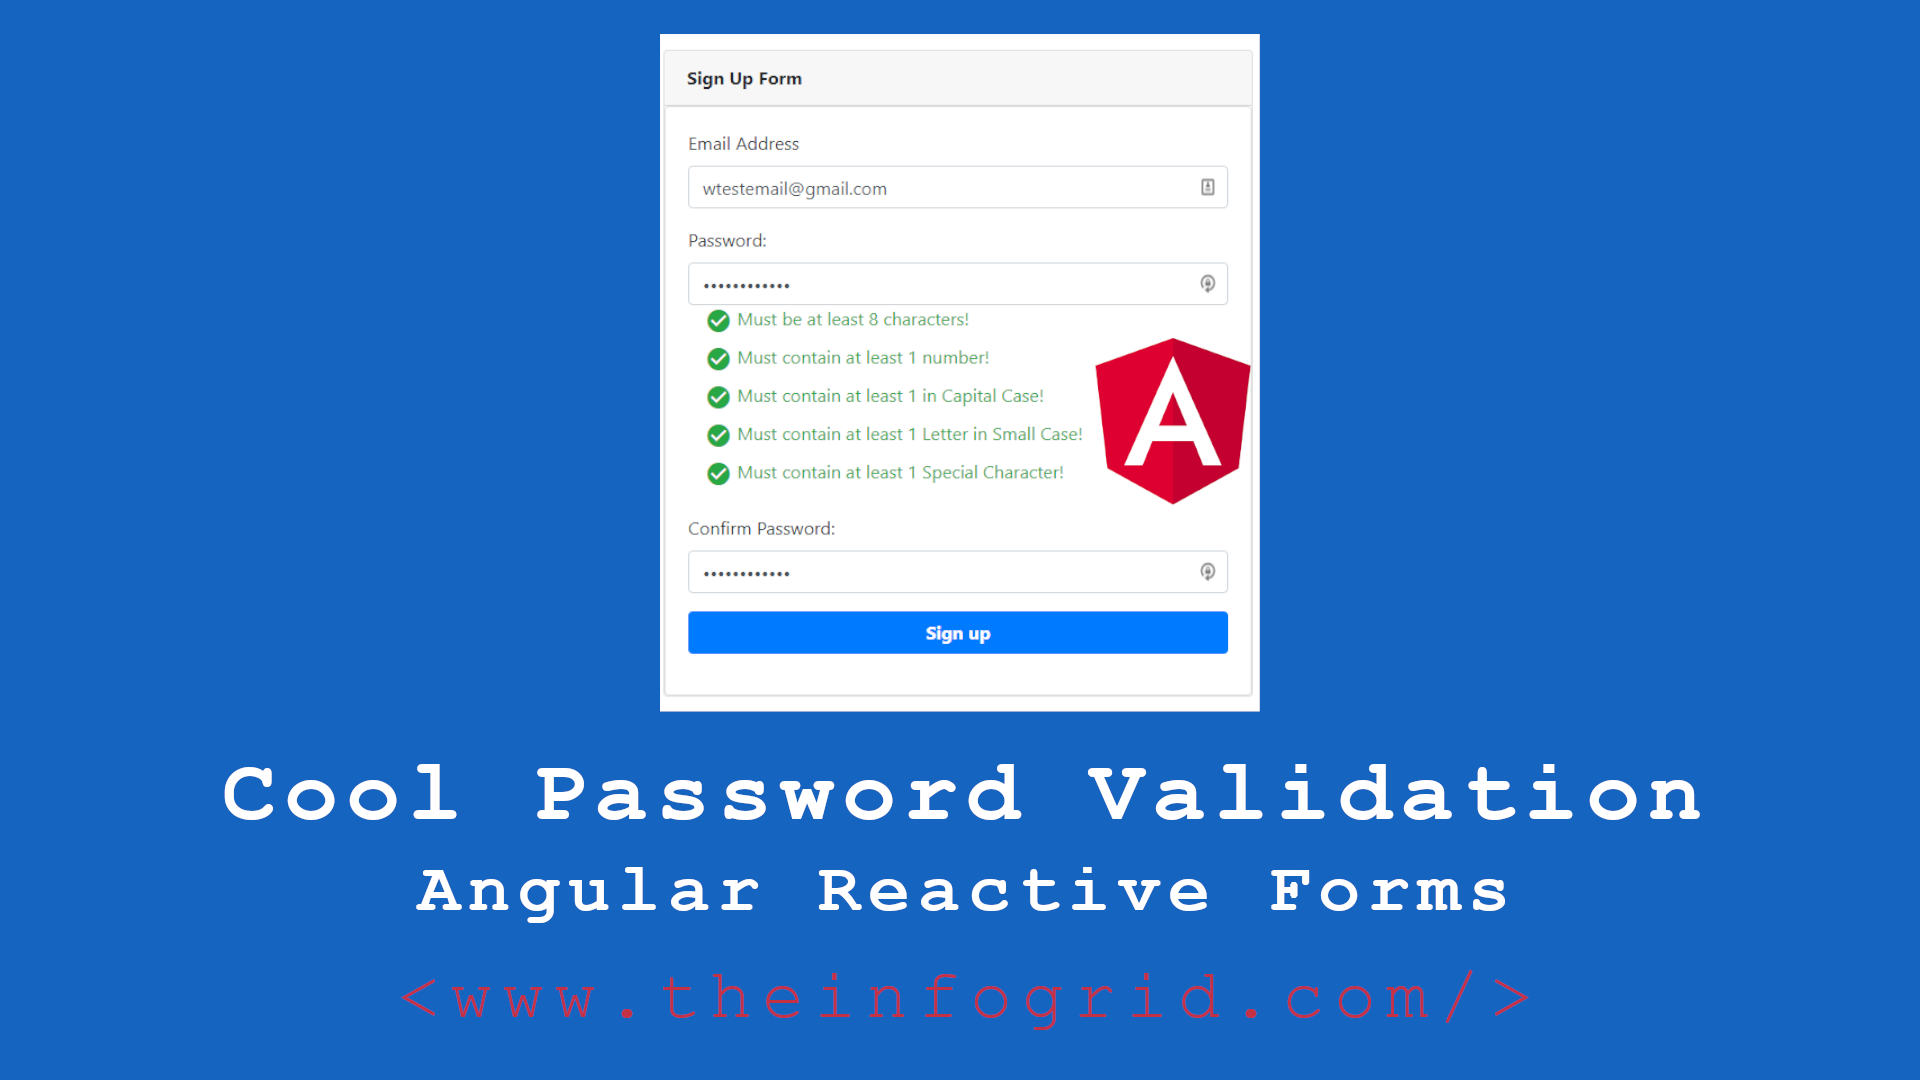 Cool Password Validation – Angular Reactive Forms